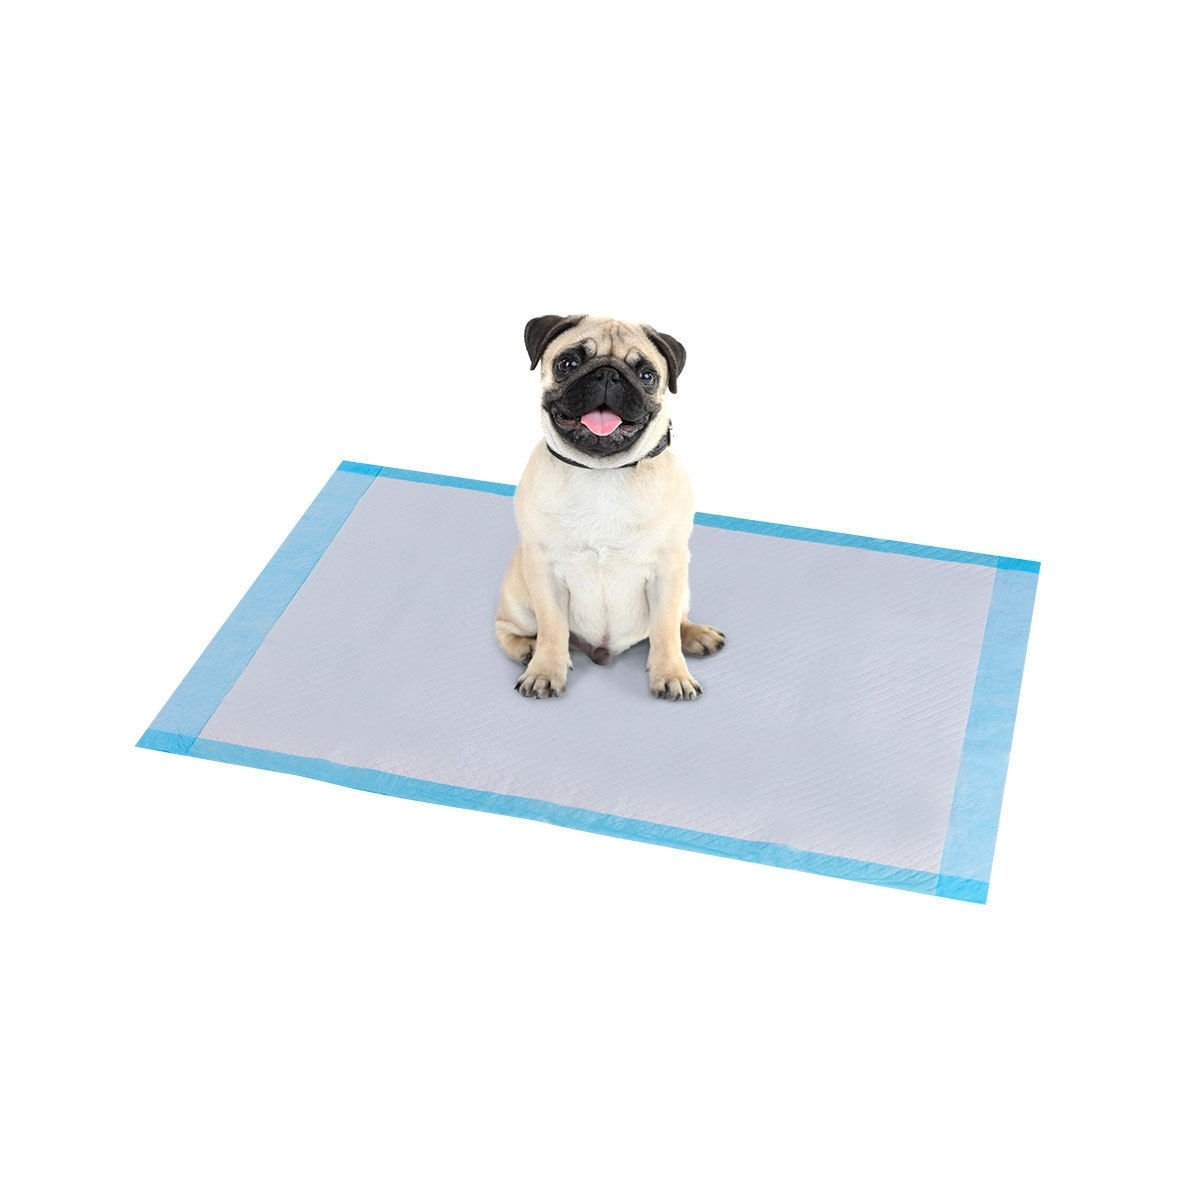 150 Pcs 24 X 36 Pet Wee Pee Piddle Pad Products In 2019 Dog